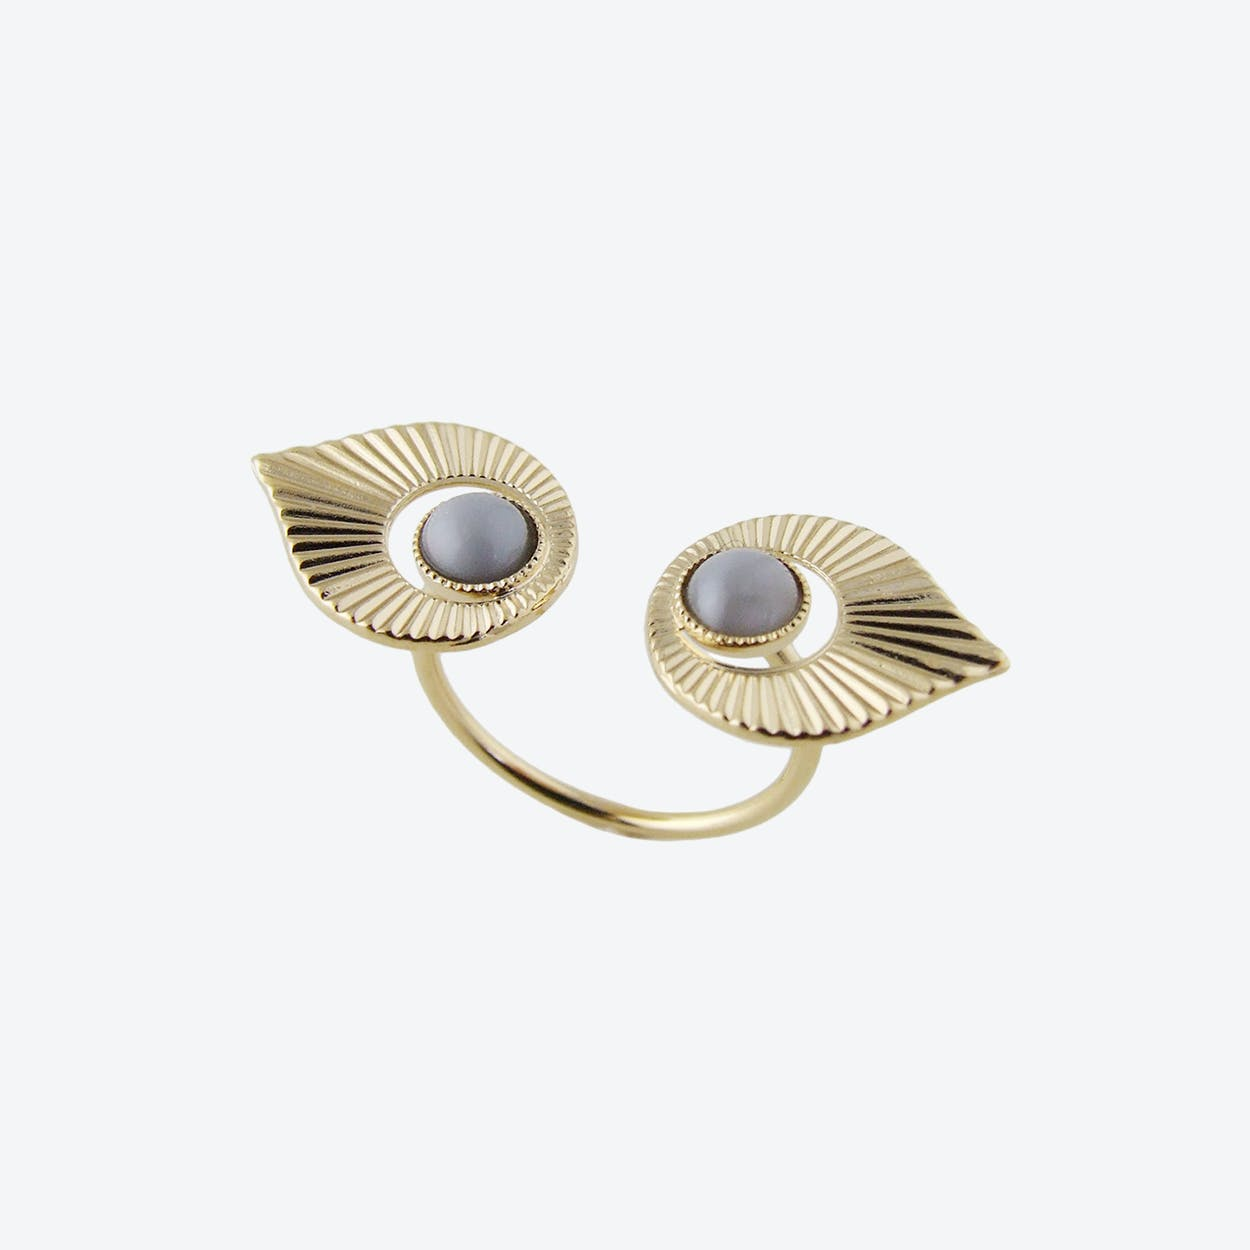 Gold Art Deco Style Floating Ring in Grey